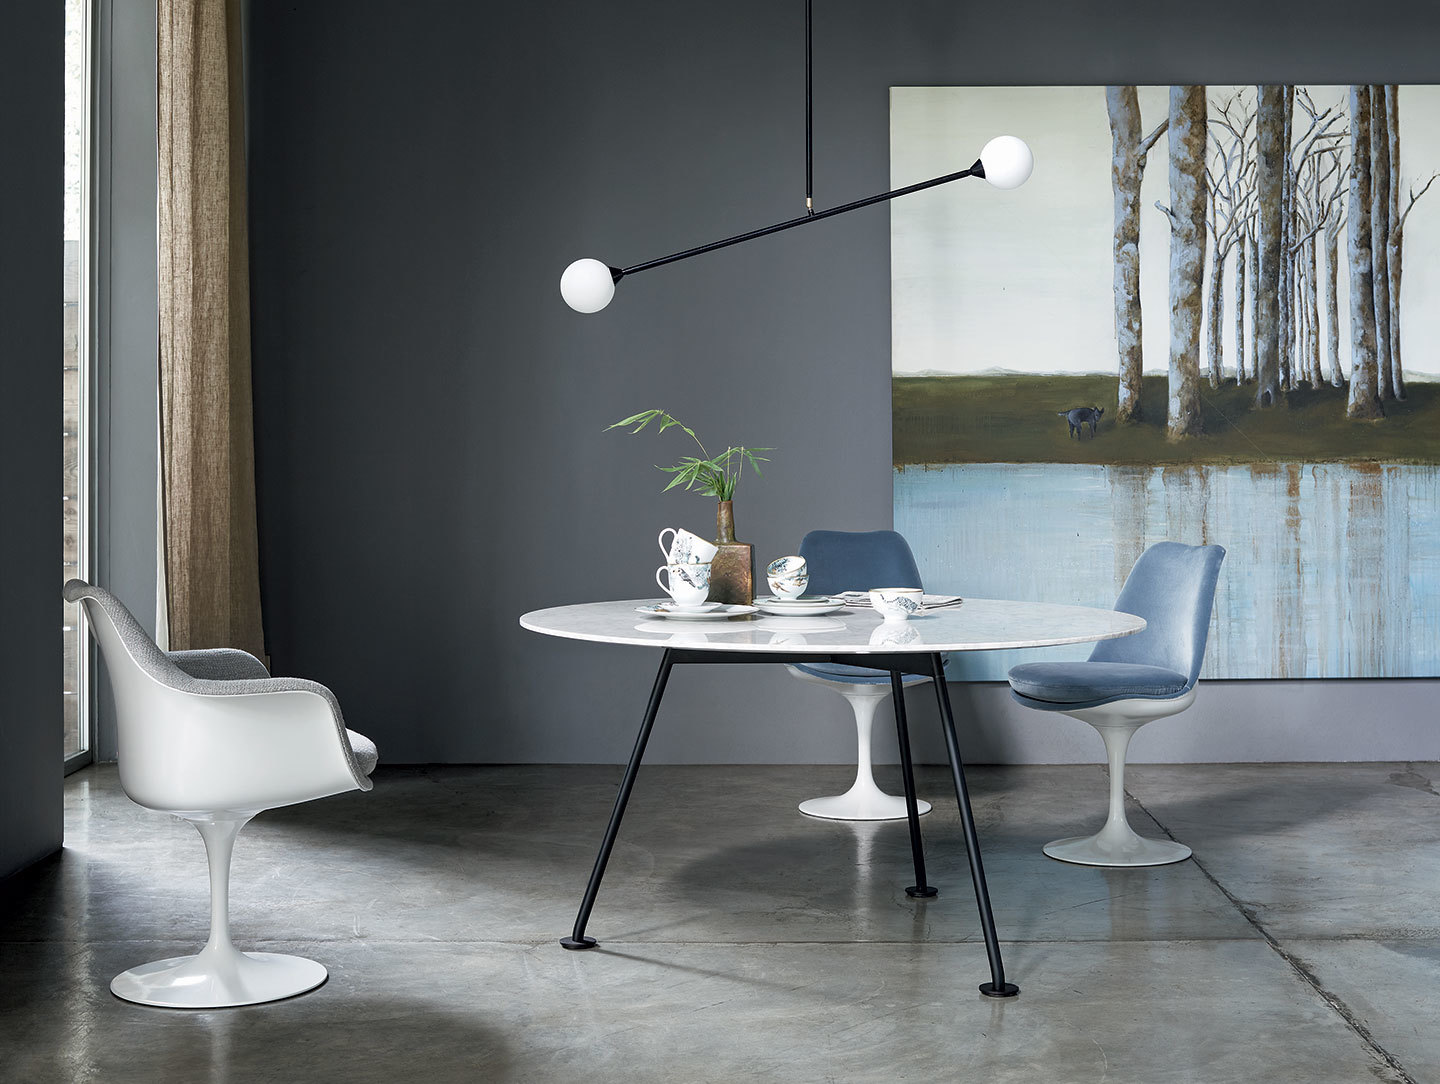 Knoll Grasshopper Table Round White Marble Piero Lissoni